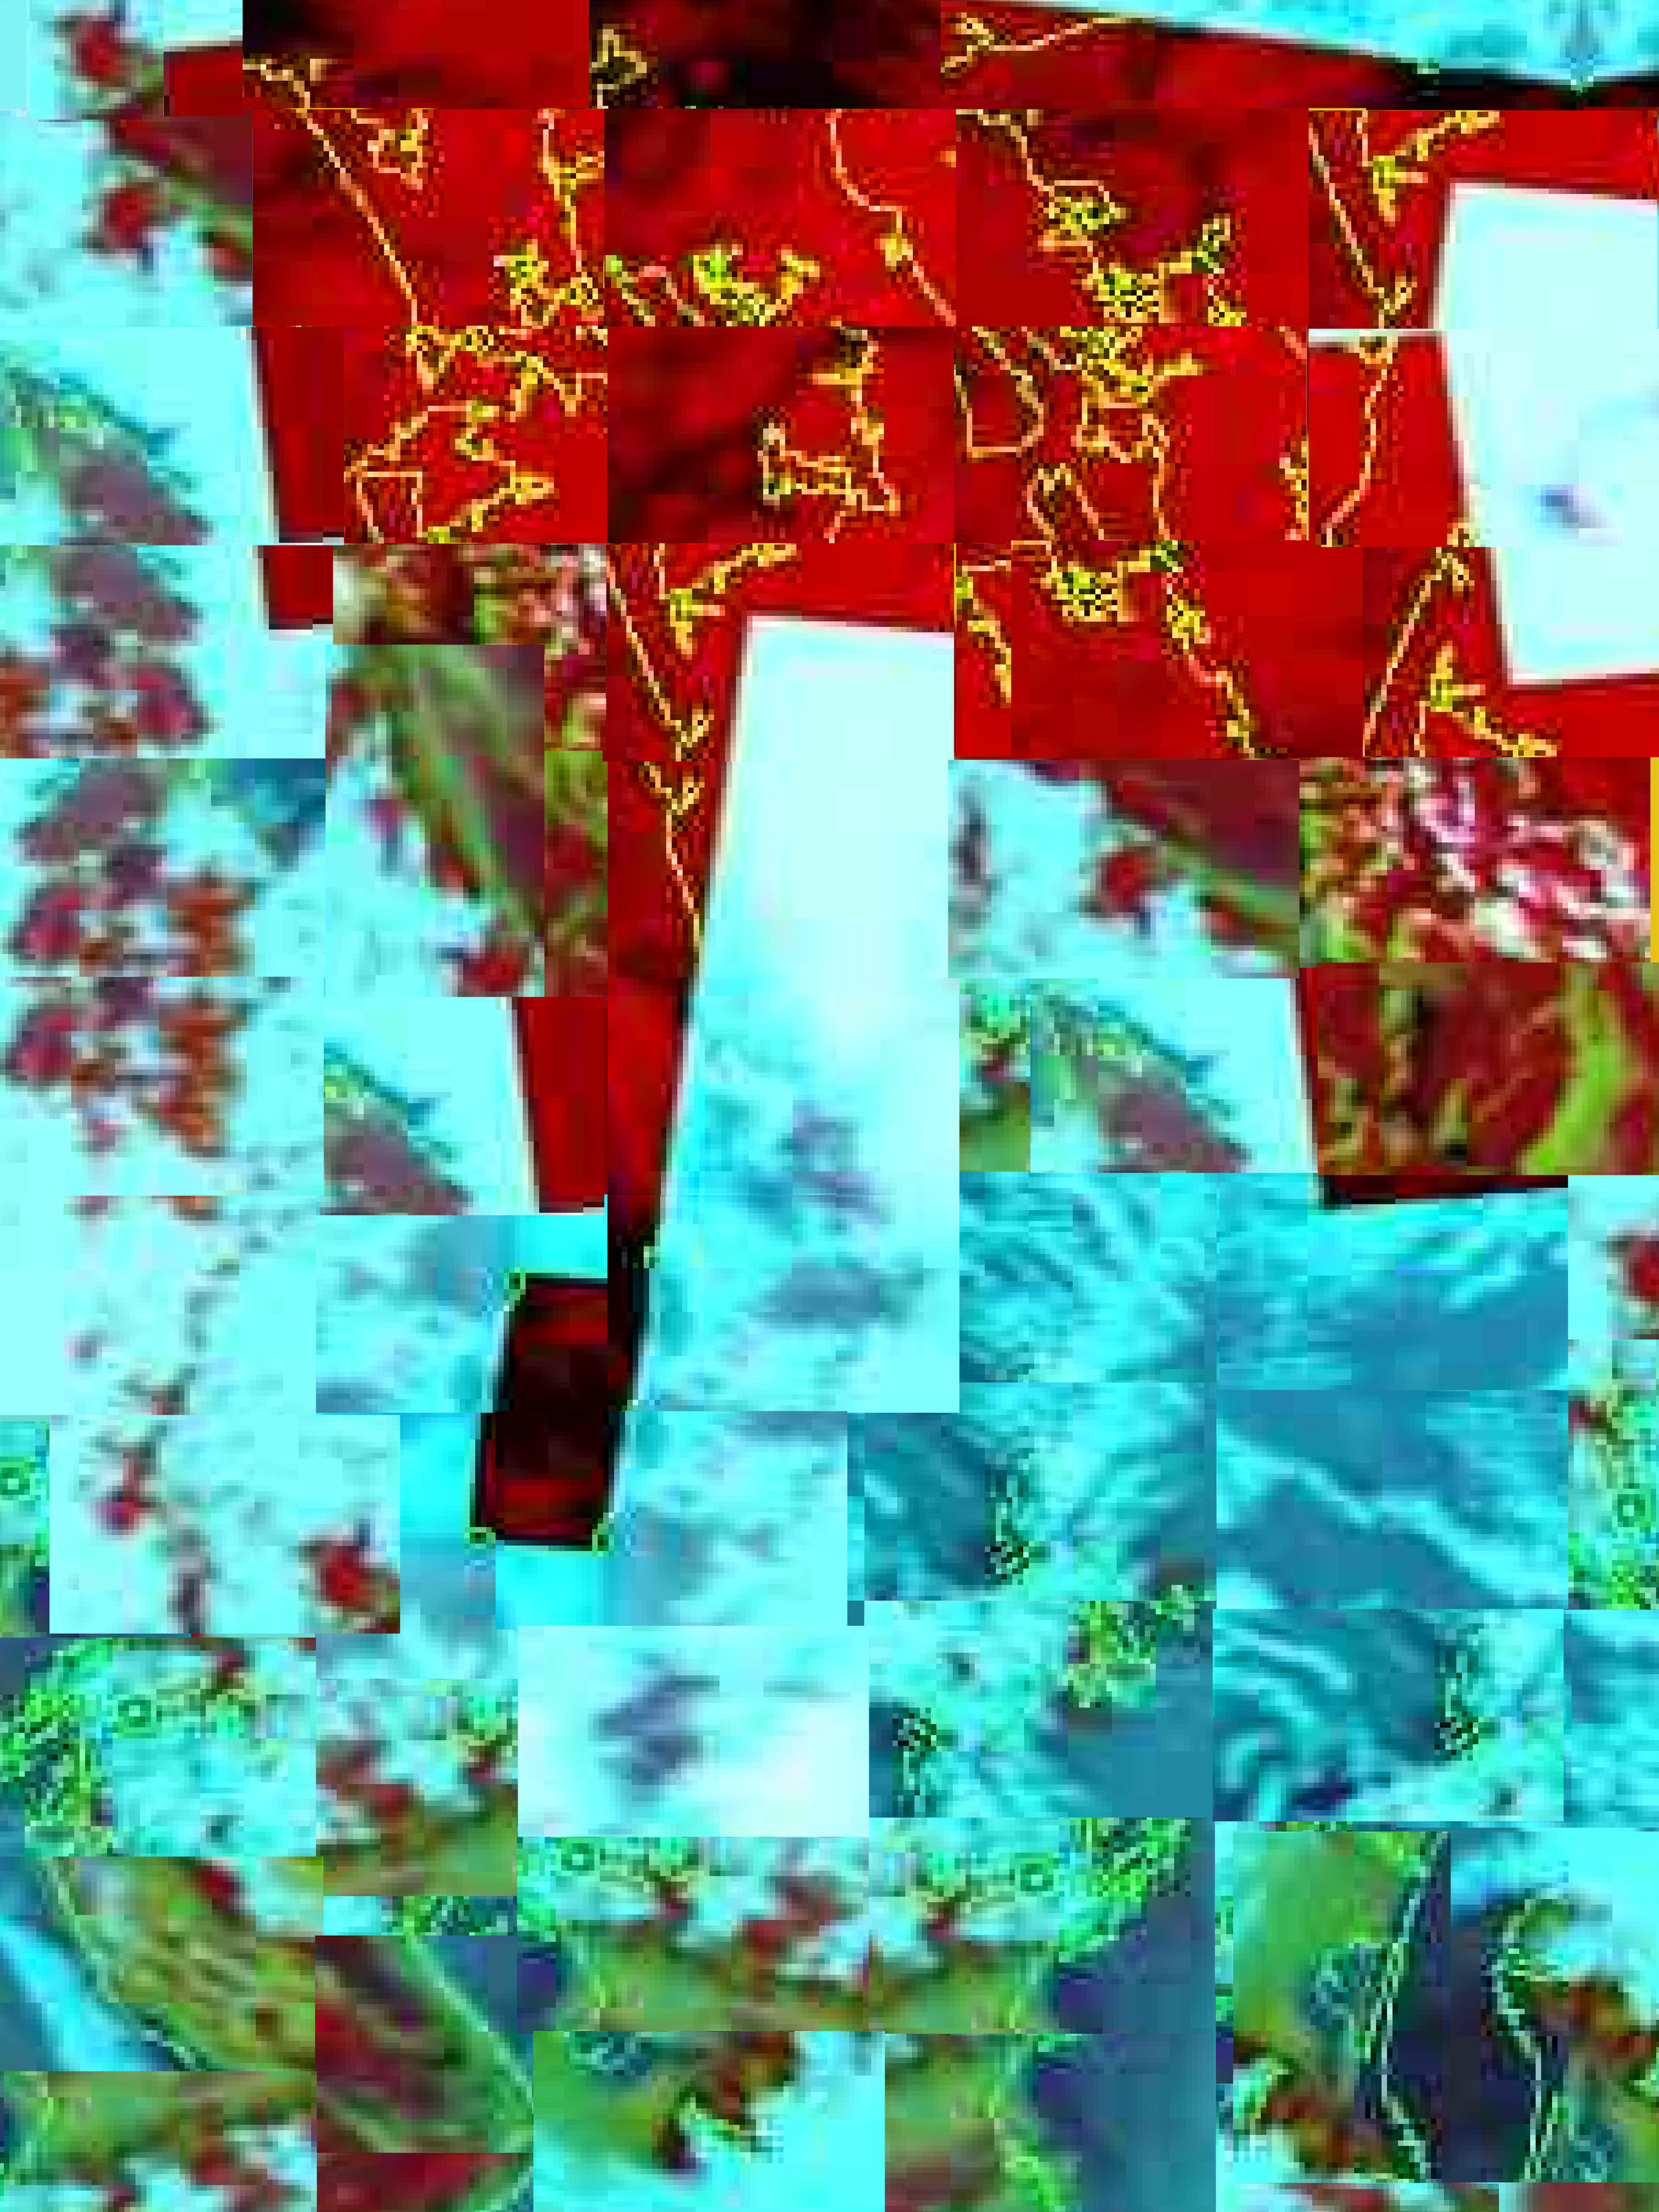 "'Godzown'  2015,   42"" x 56"",   Digital Print,    Digital montage based on satellite image signal distortions, from the Landcare Research weather monitoring site, New Zealand"